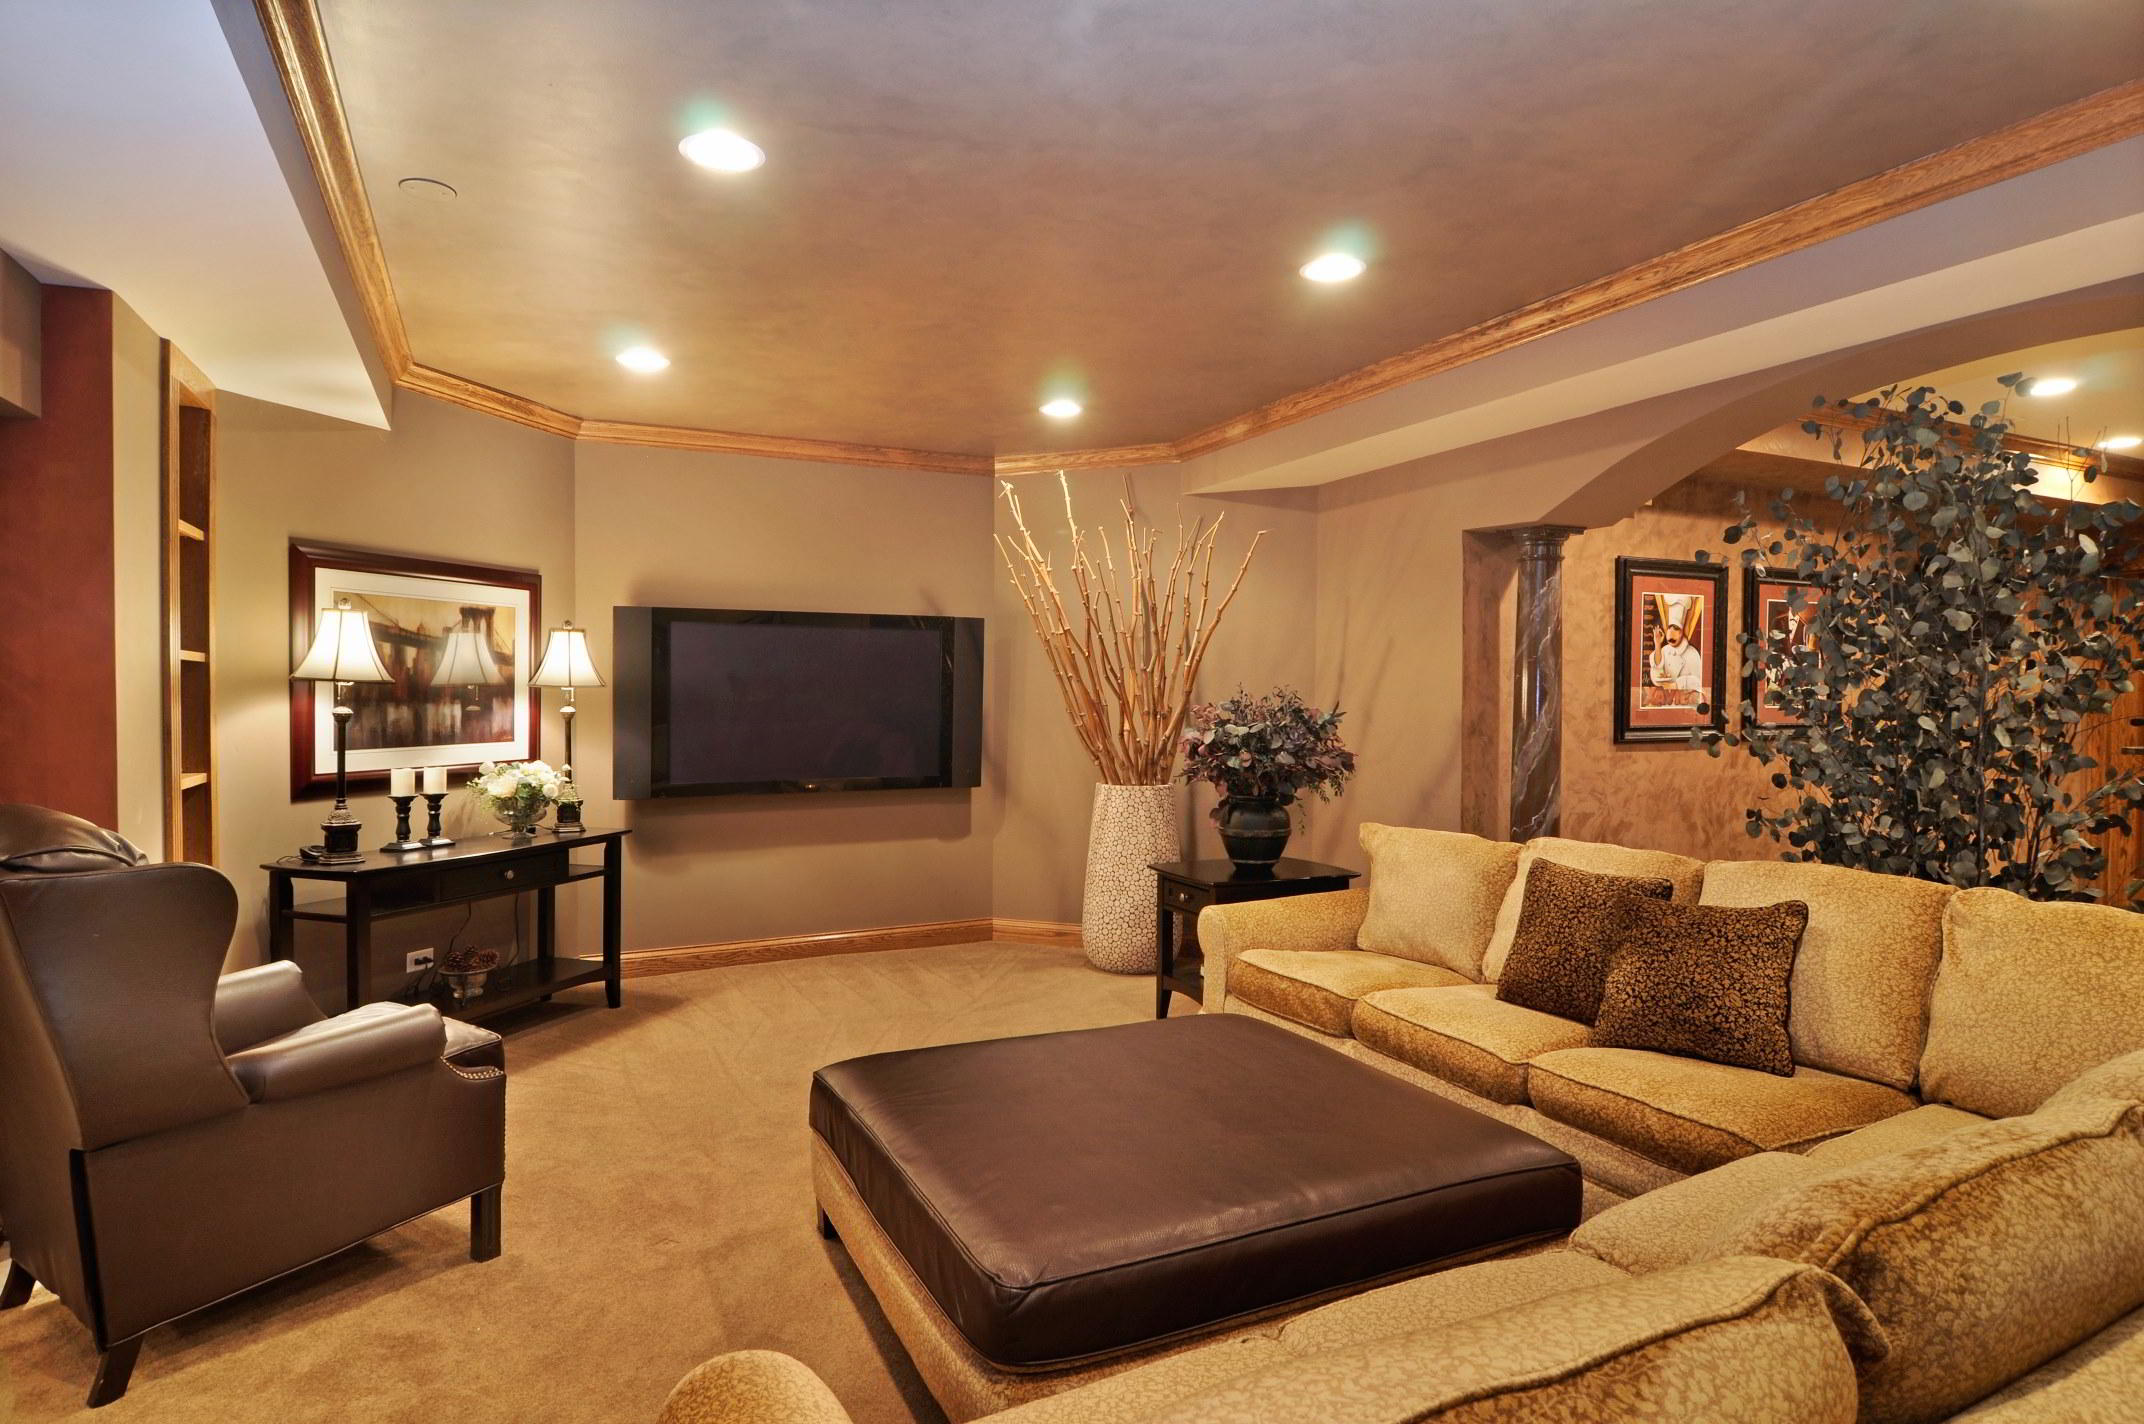 Home Remodeling Interior Design Arlington Heights IL | Basement Renovations